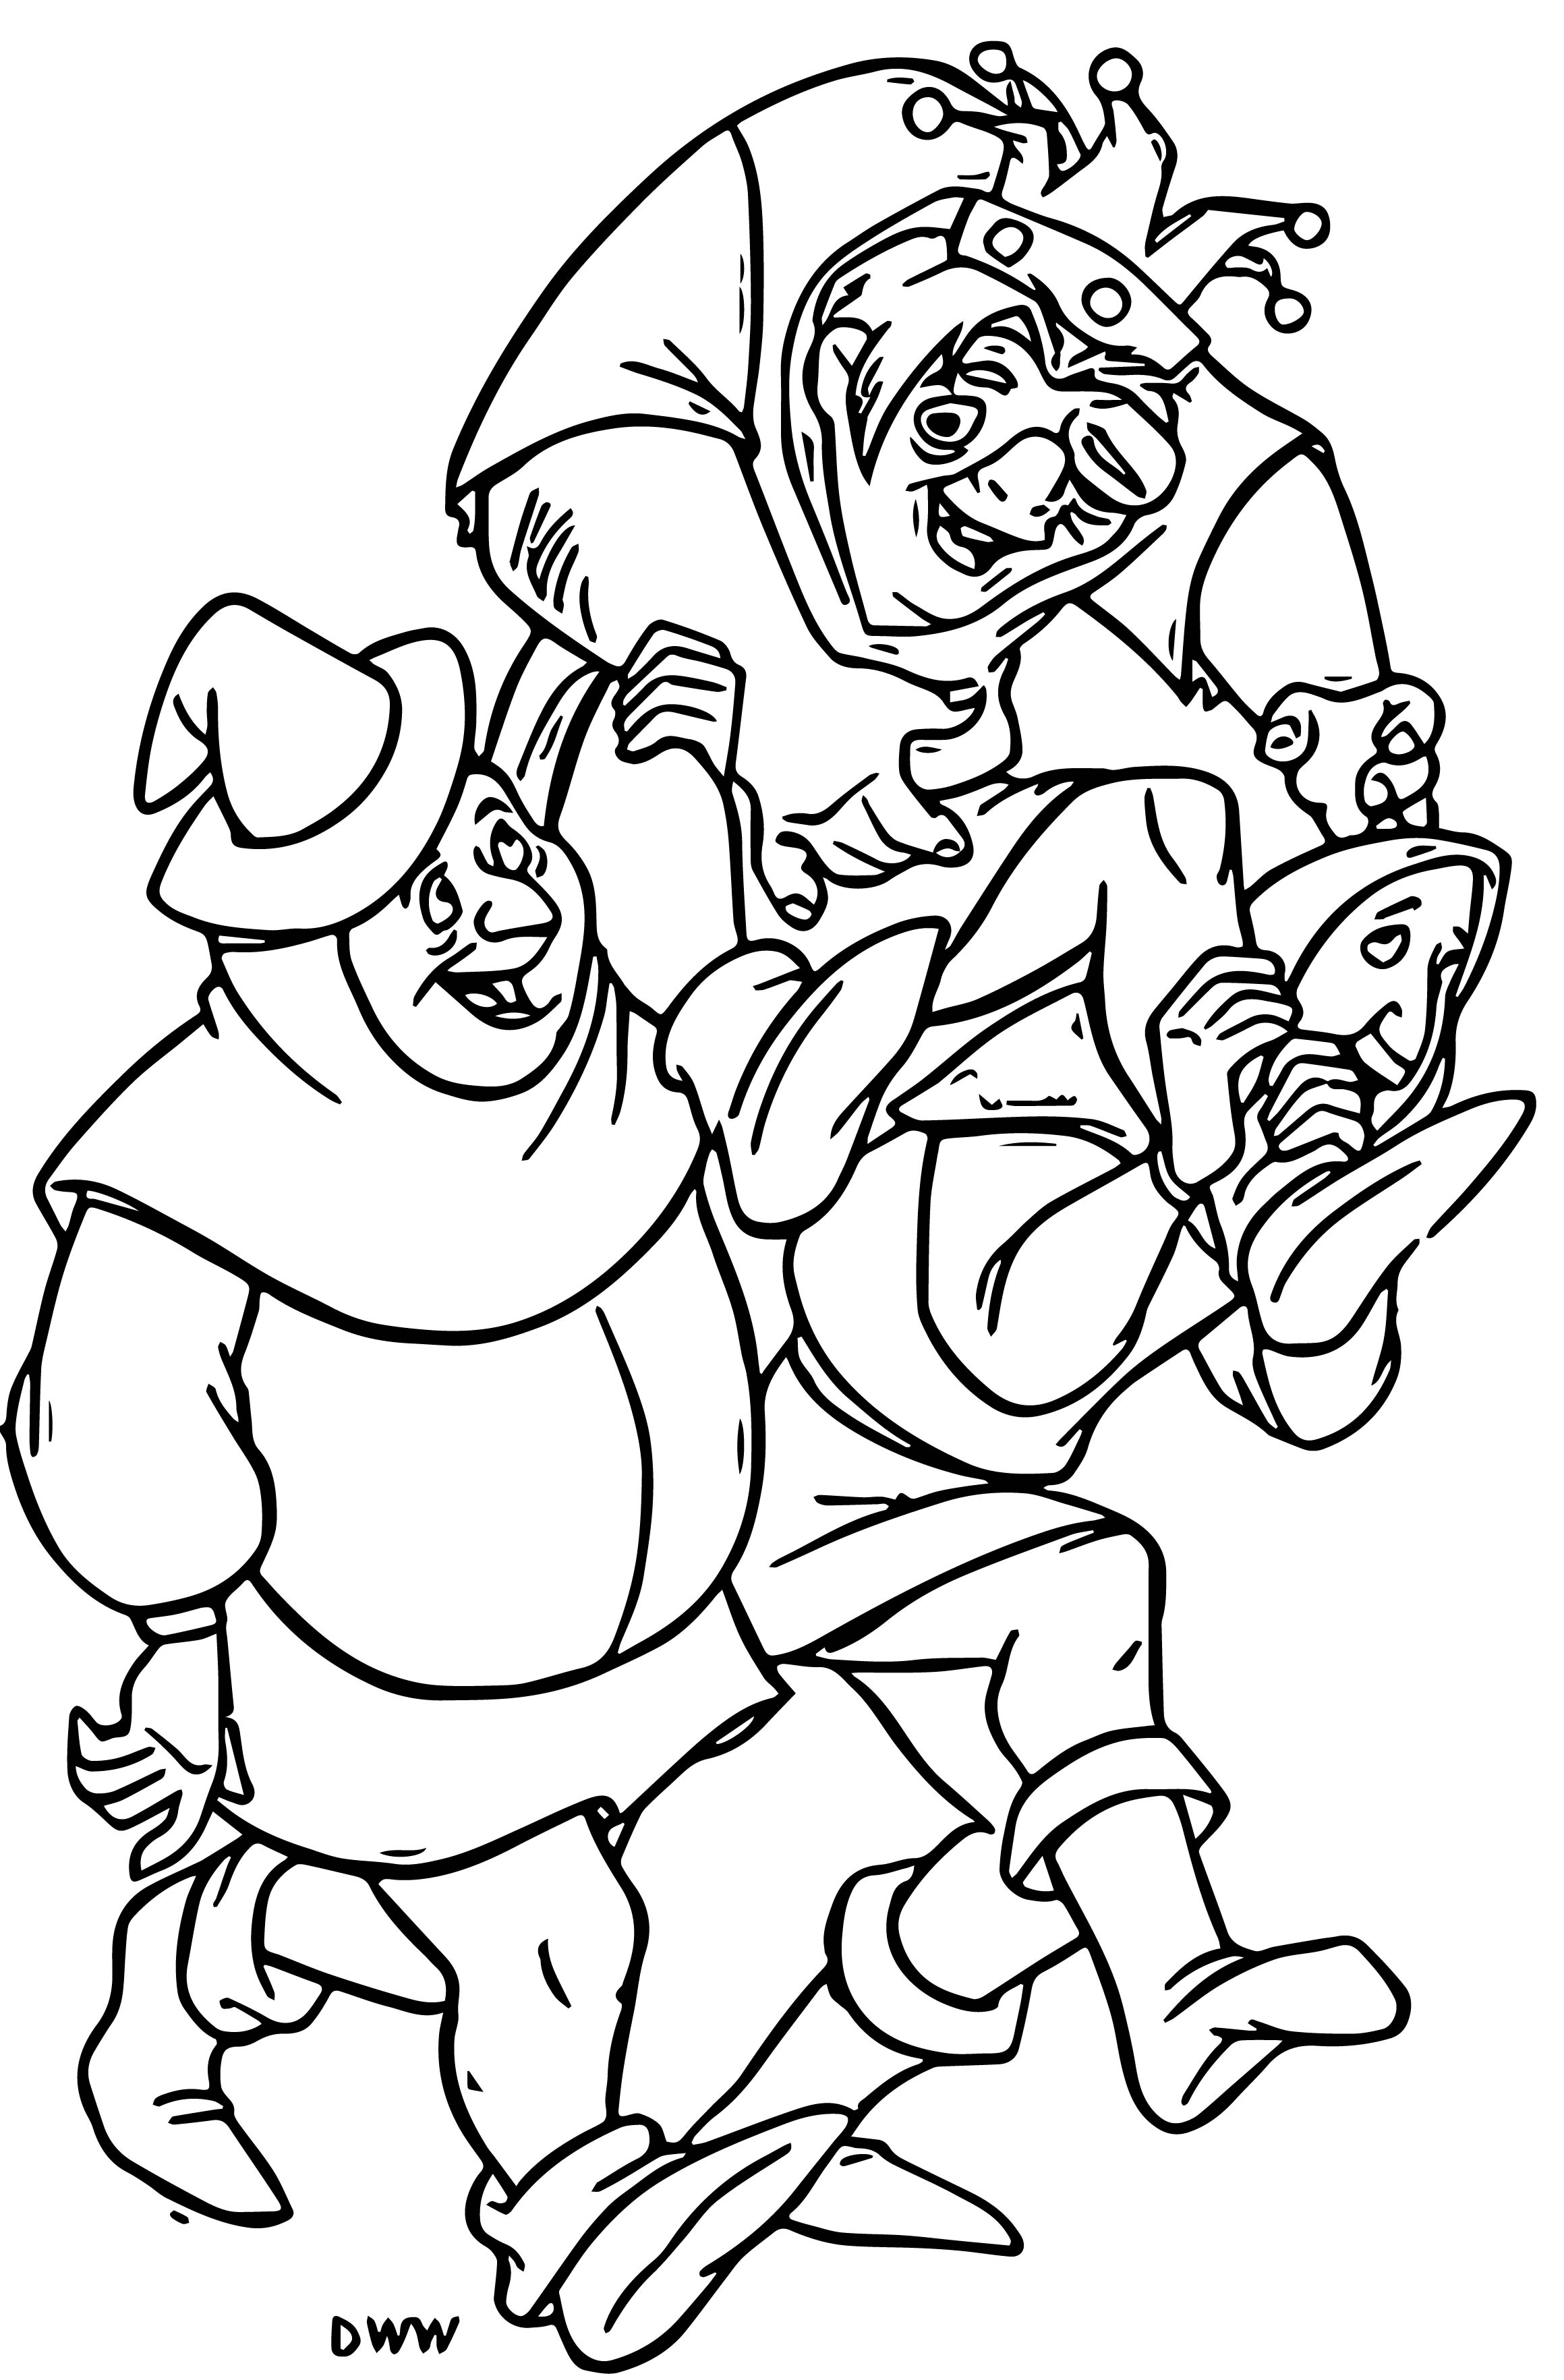 The Hunchback Of Notre Dame Hfr2 Cartoon Coloring Pages